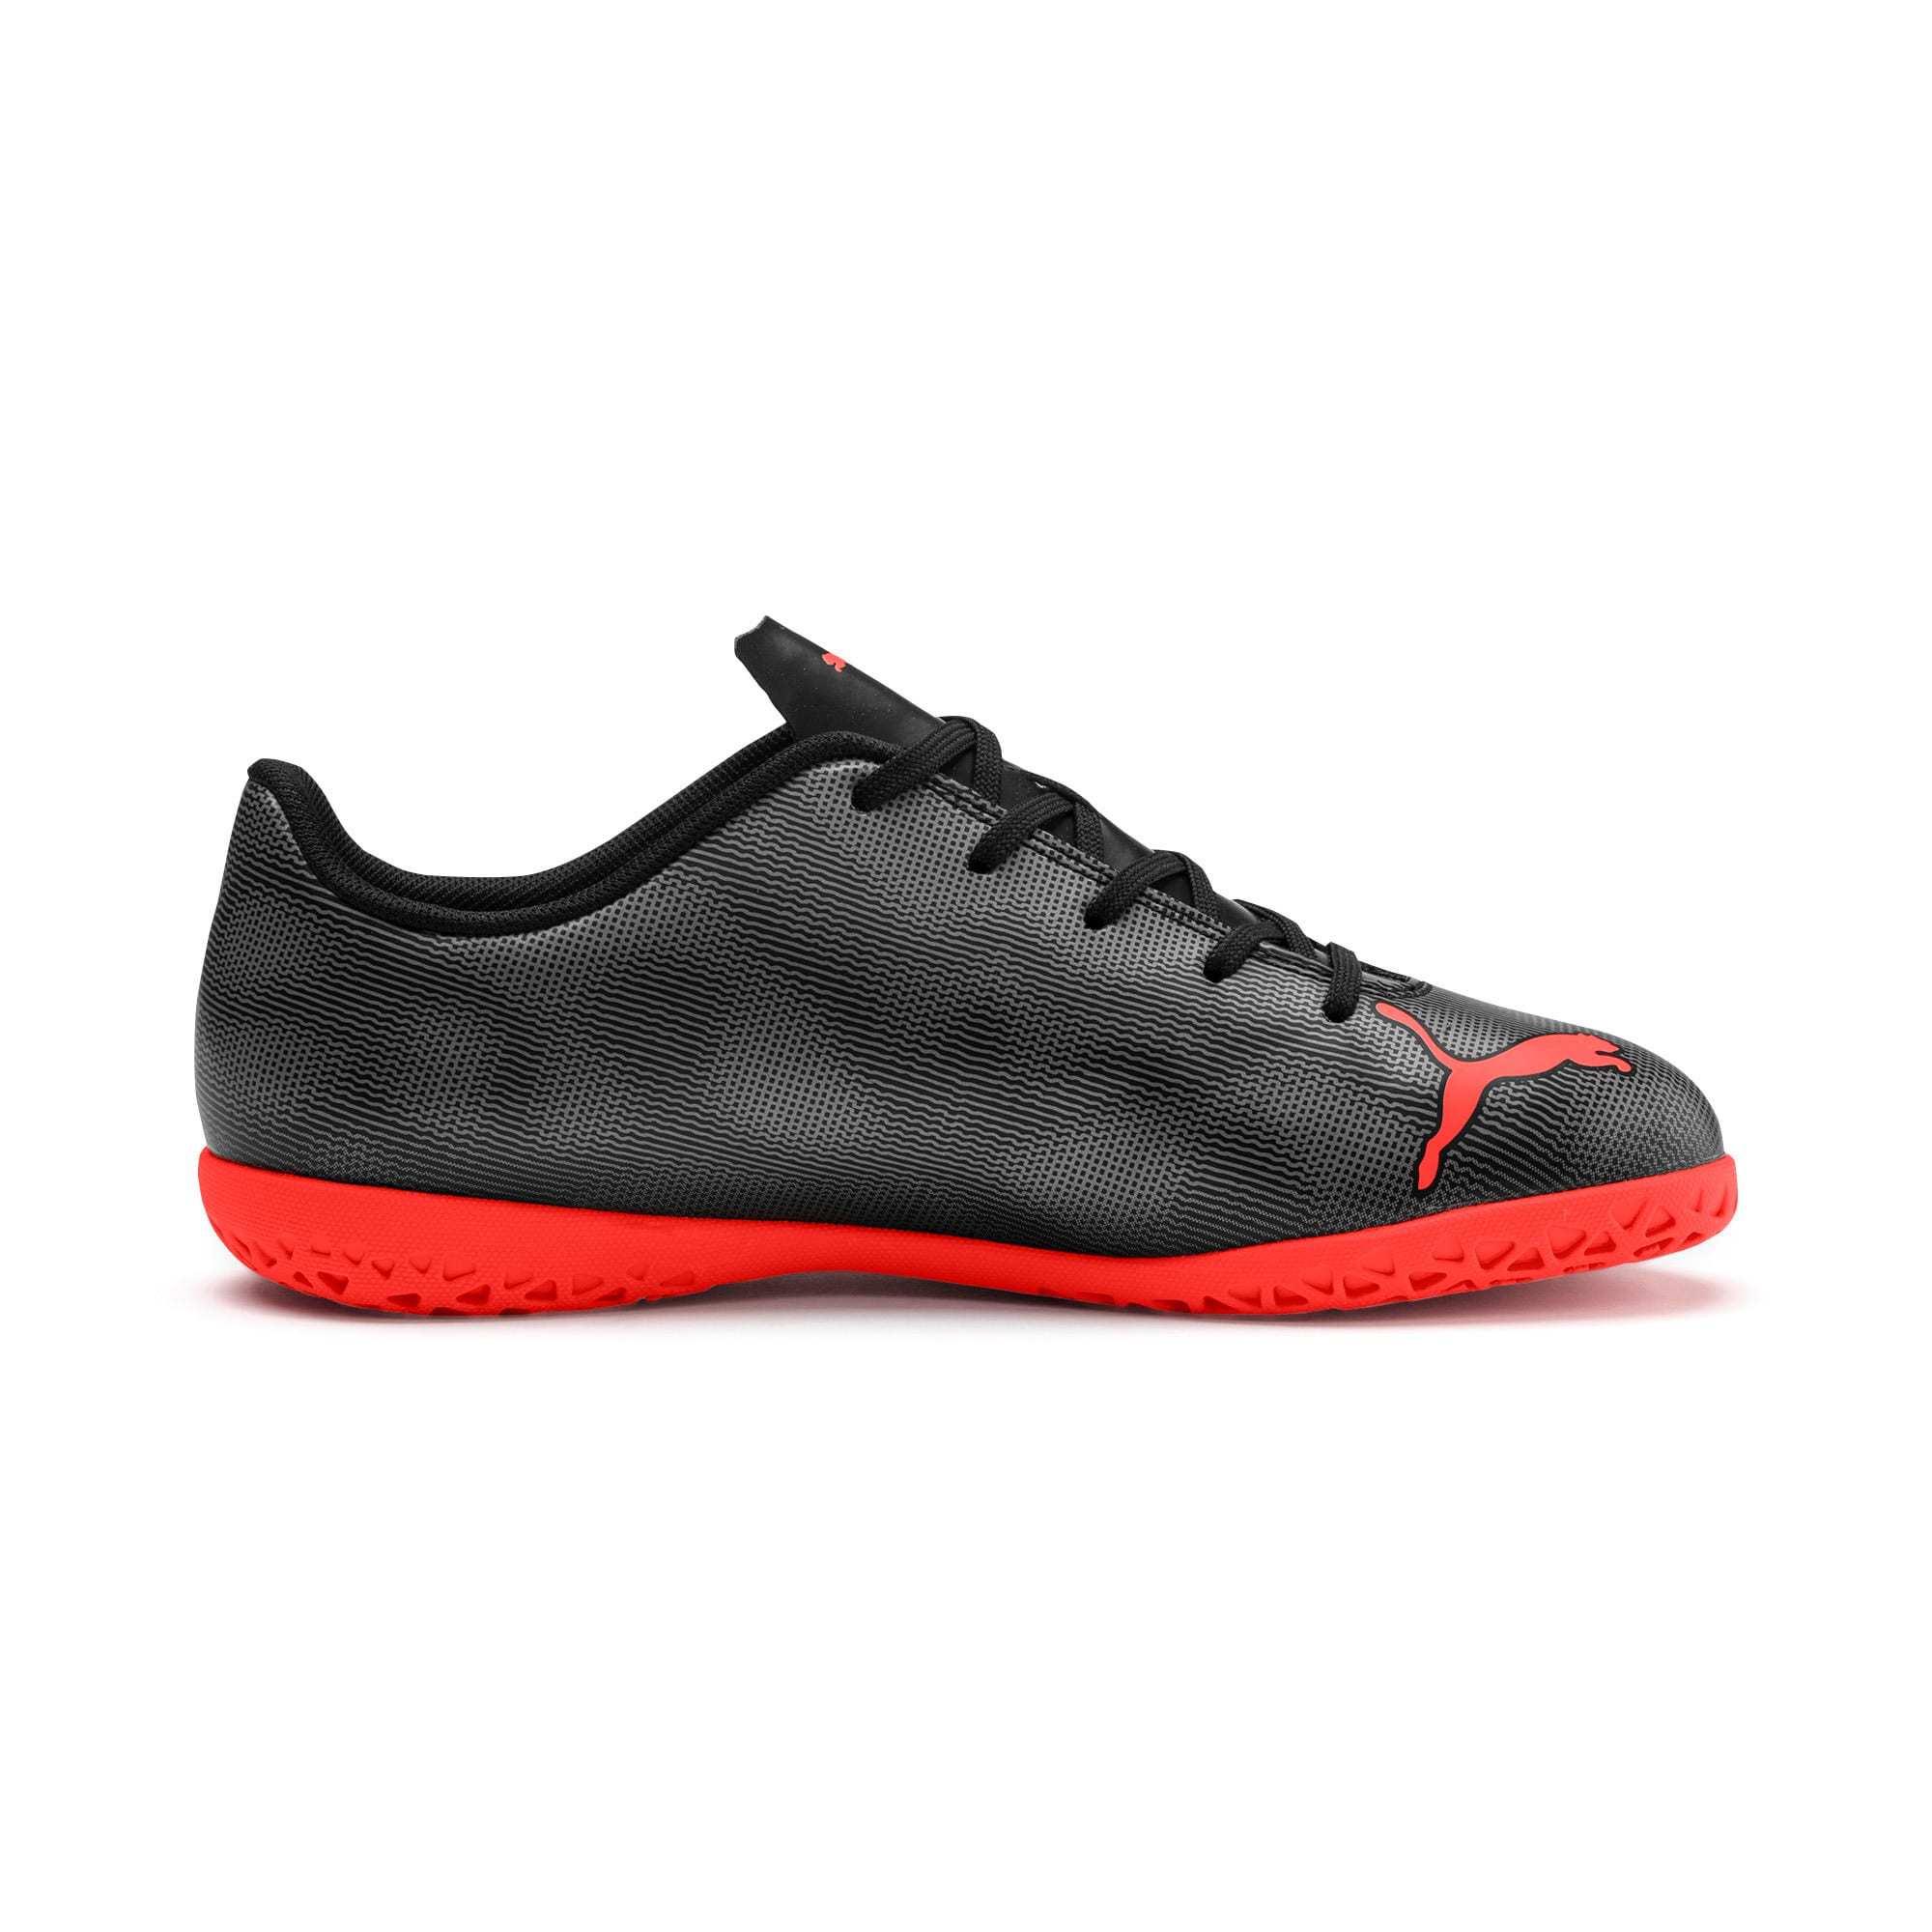 Thumbnail 5 of Rapido IT Youth Football Boots, Black-Nrgy Red-Aged Silver, medium-IND